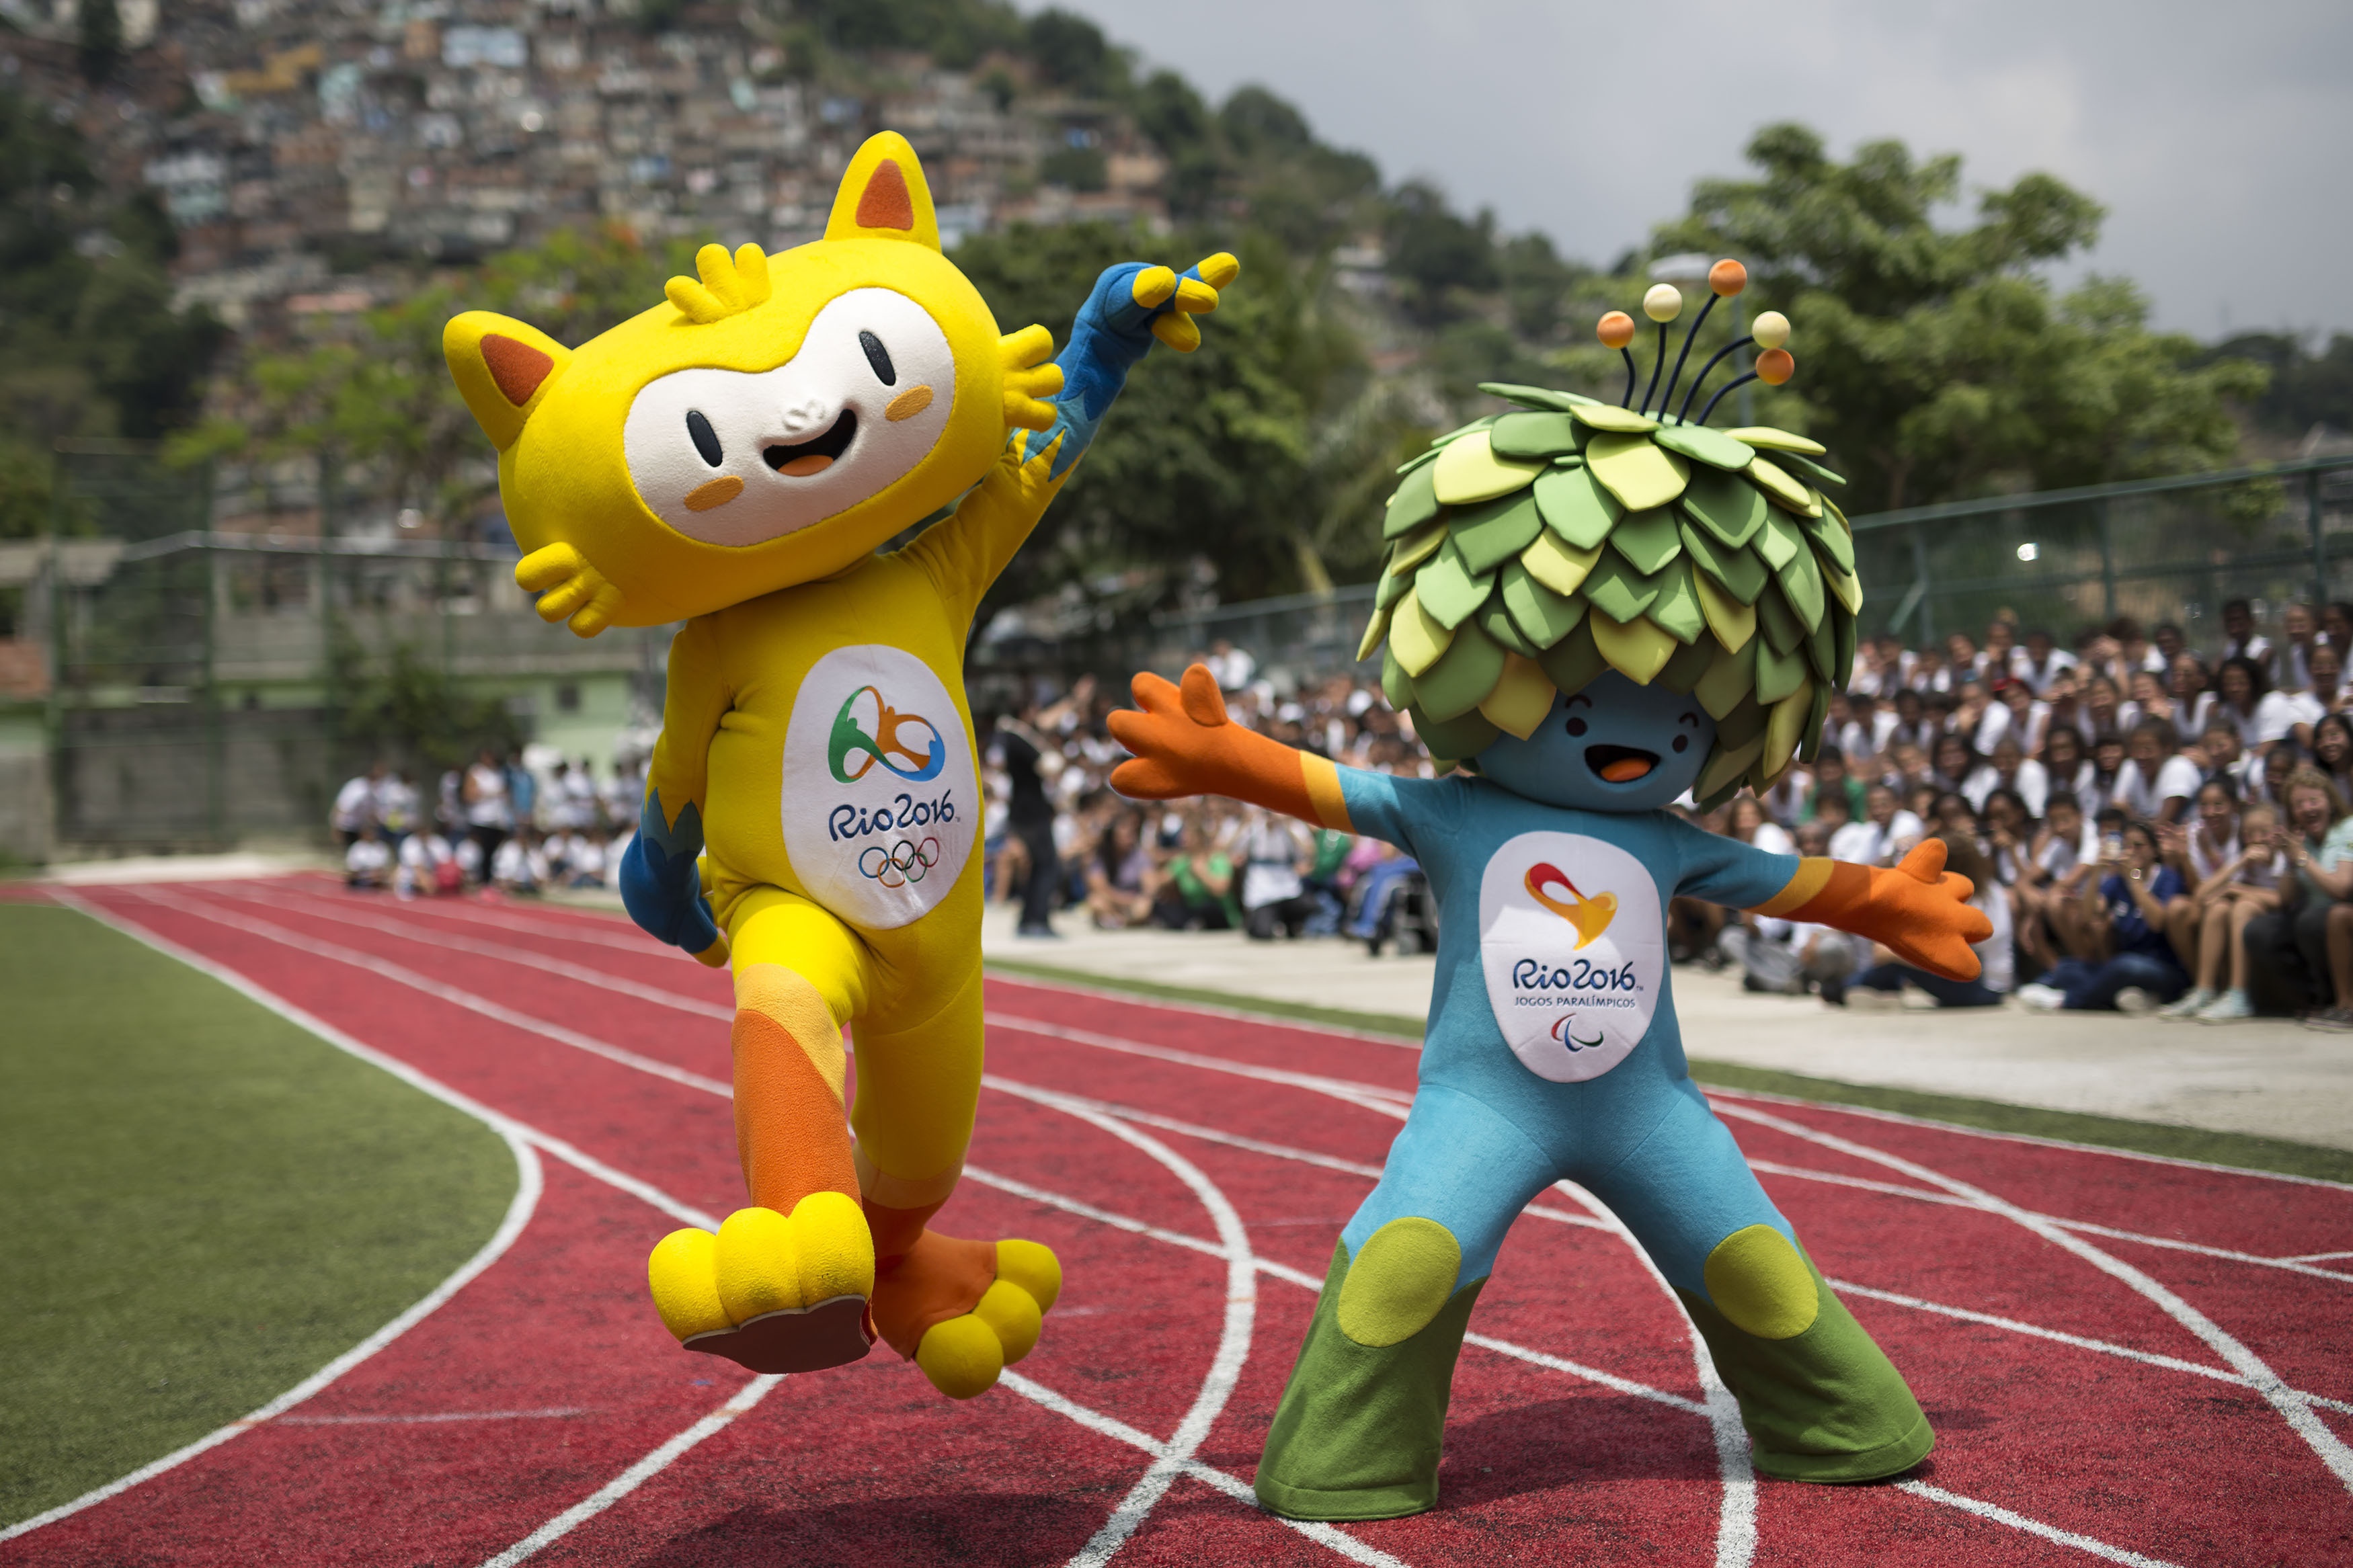 FILE - In this Nov. 24, 2014 file photo, the mascots of the Rio 2016 Olympics, left, and Paralympic Games make their first official appearance at a public school in the Santa Teresa neighborhood of Rio de Janeiro, Brazil.  Almost four months after the Oly